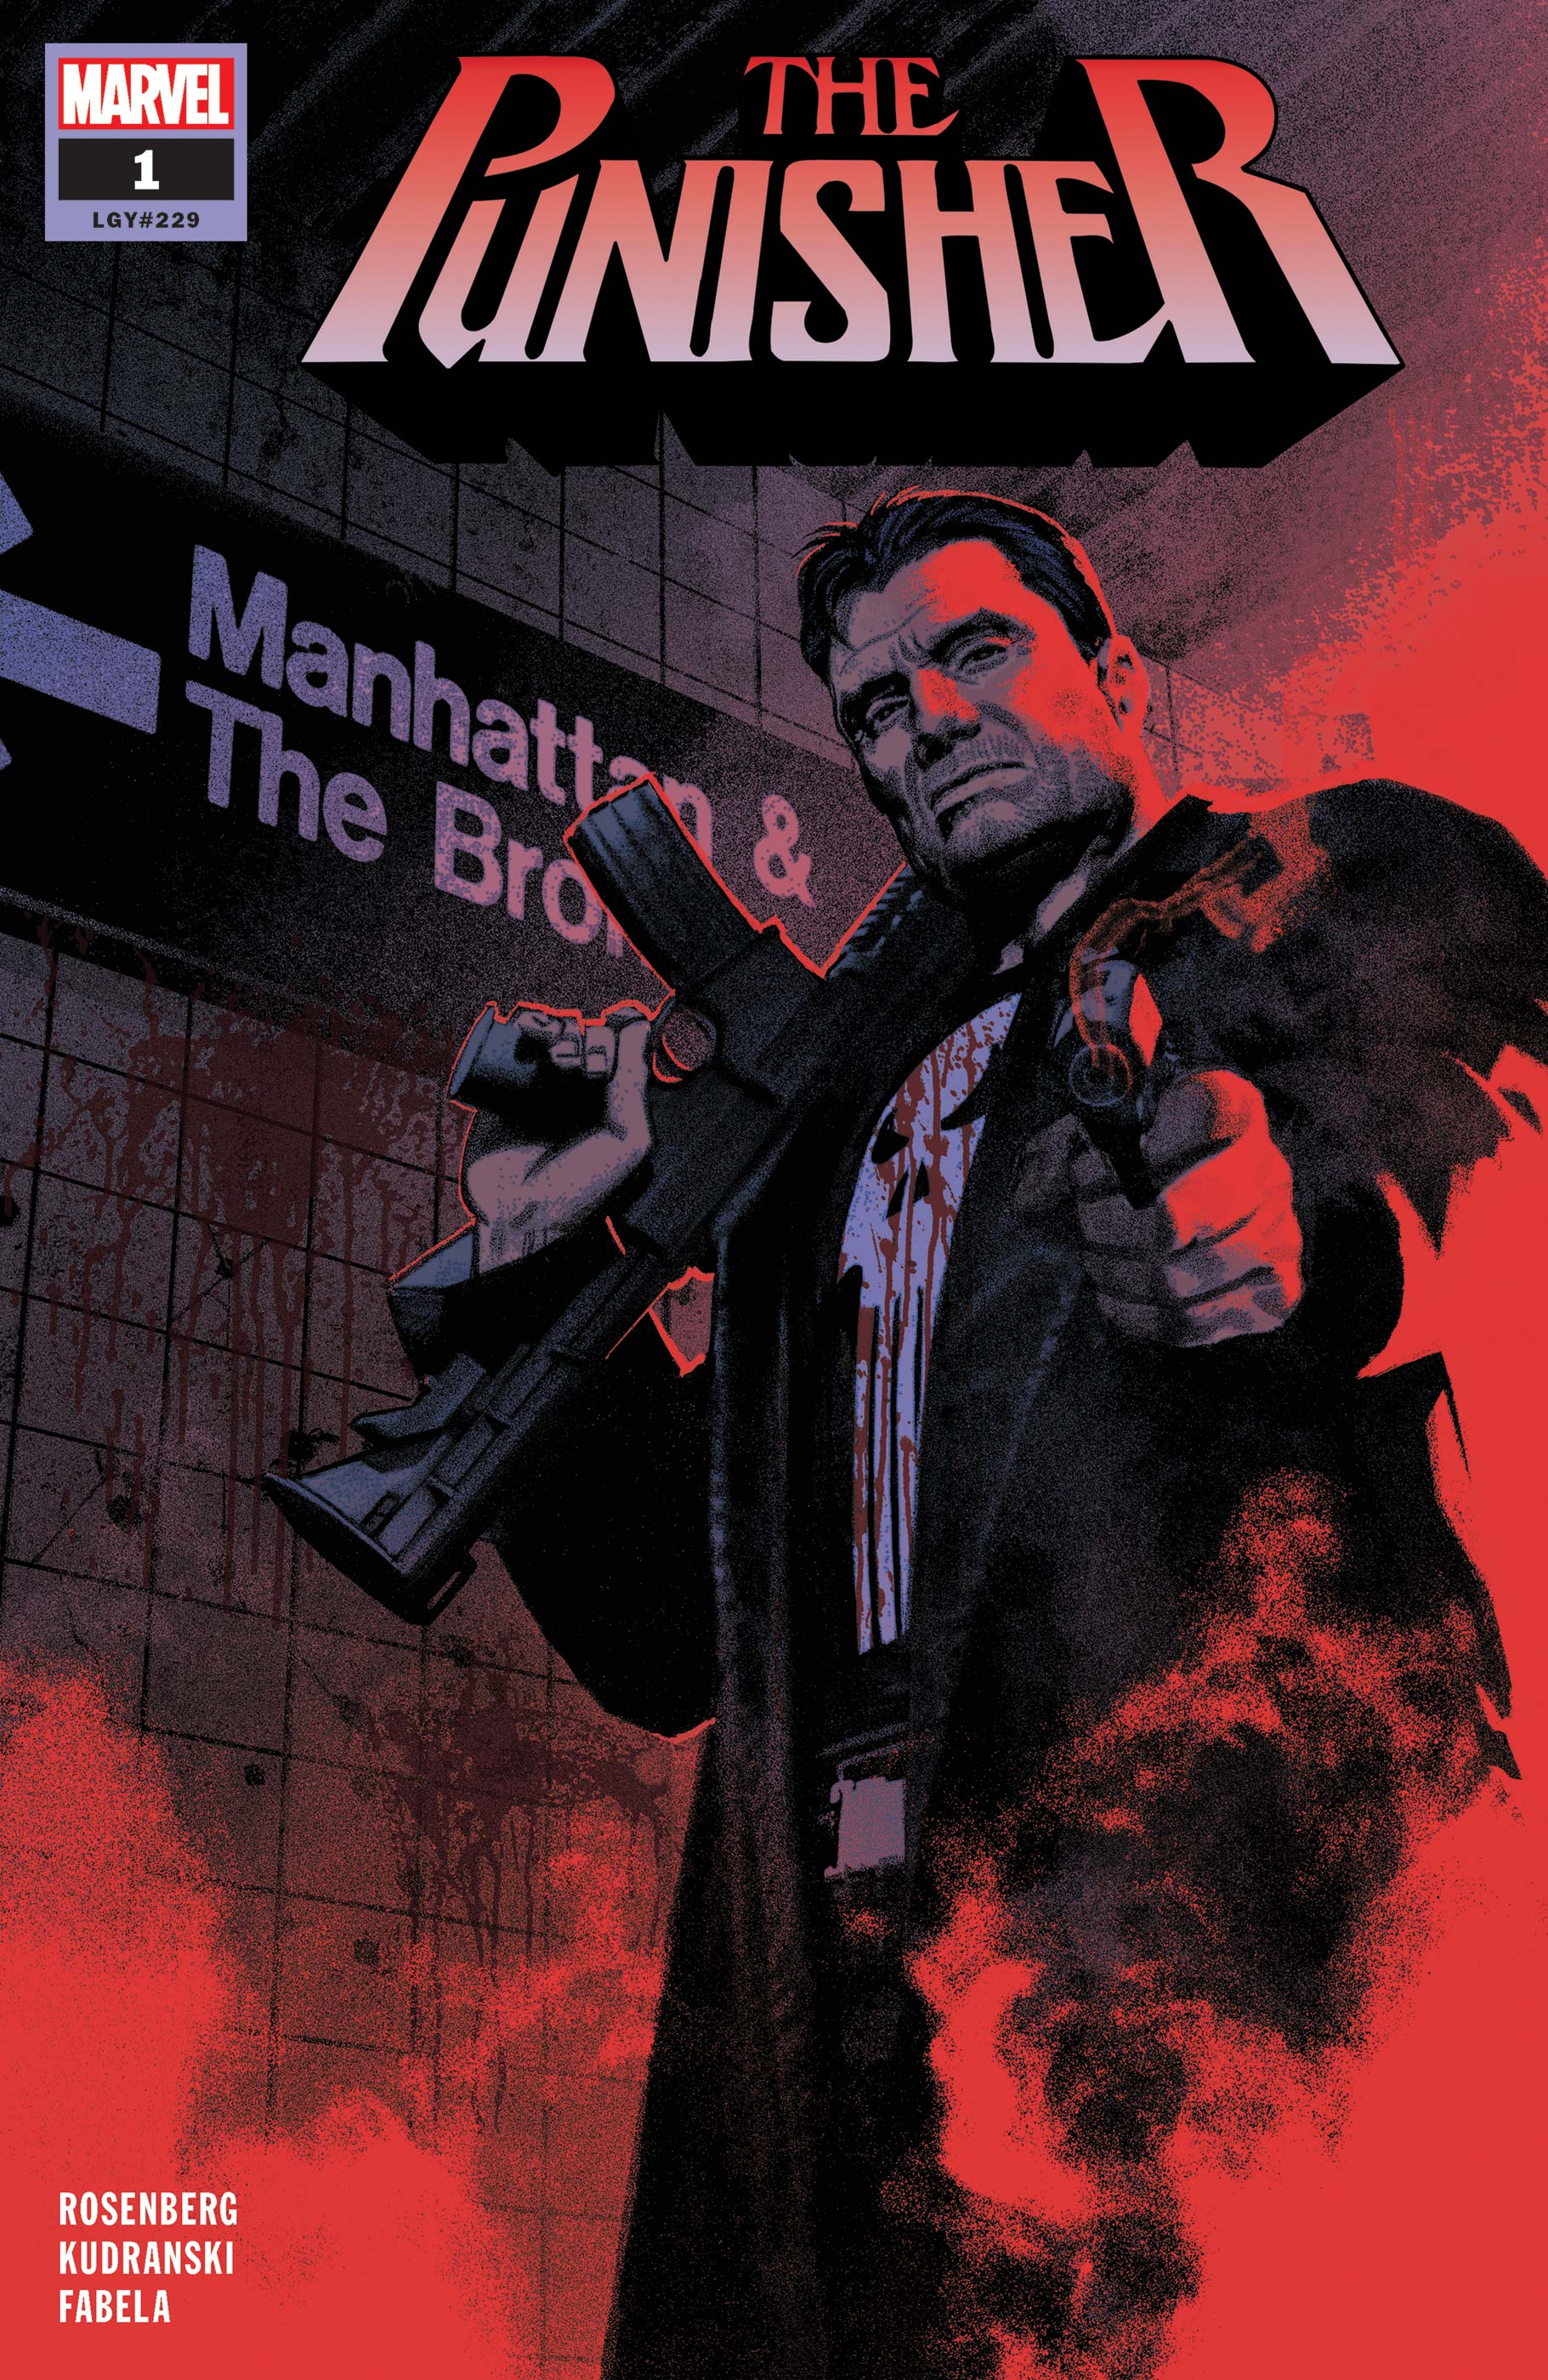 The Punisher (2018) #1